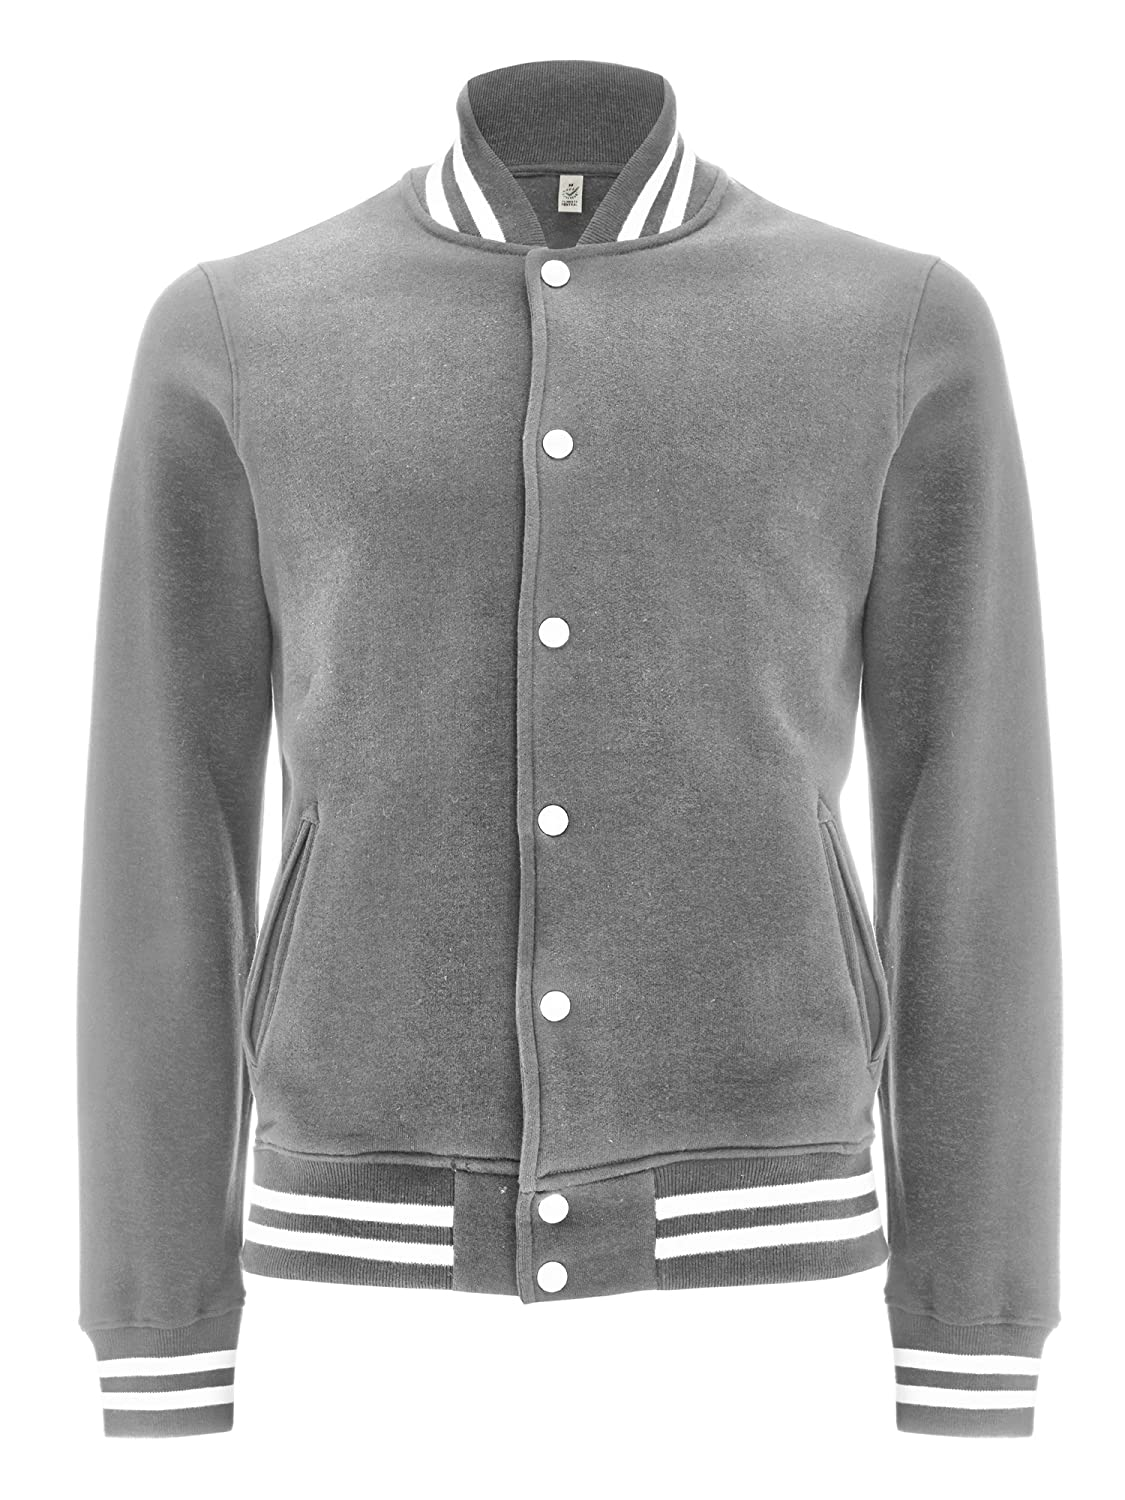 Womens Varsity Jacket - Letterman College Jacket for Women - 100% Organic Cotton Underhood of London